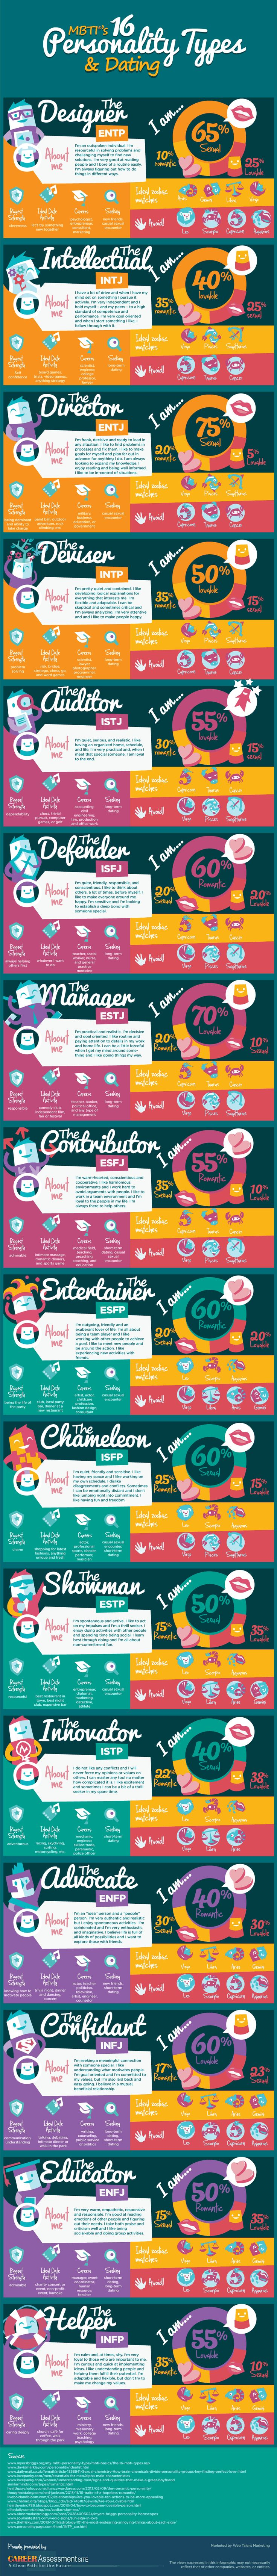 Infographic: Your Personality: Are You Romantic, Lovable or Sexual